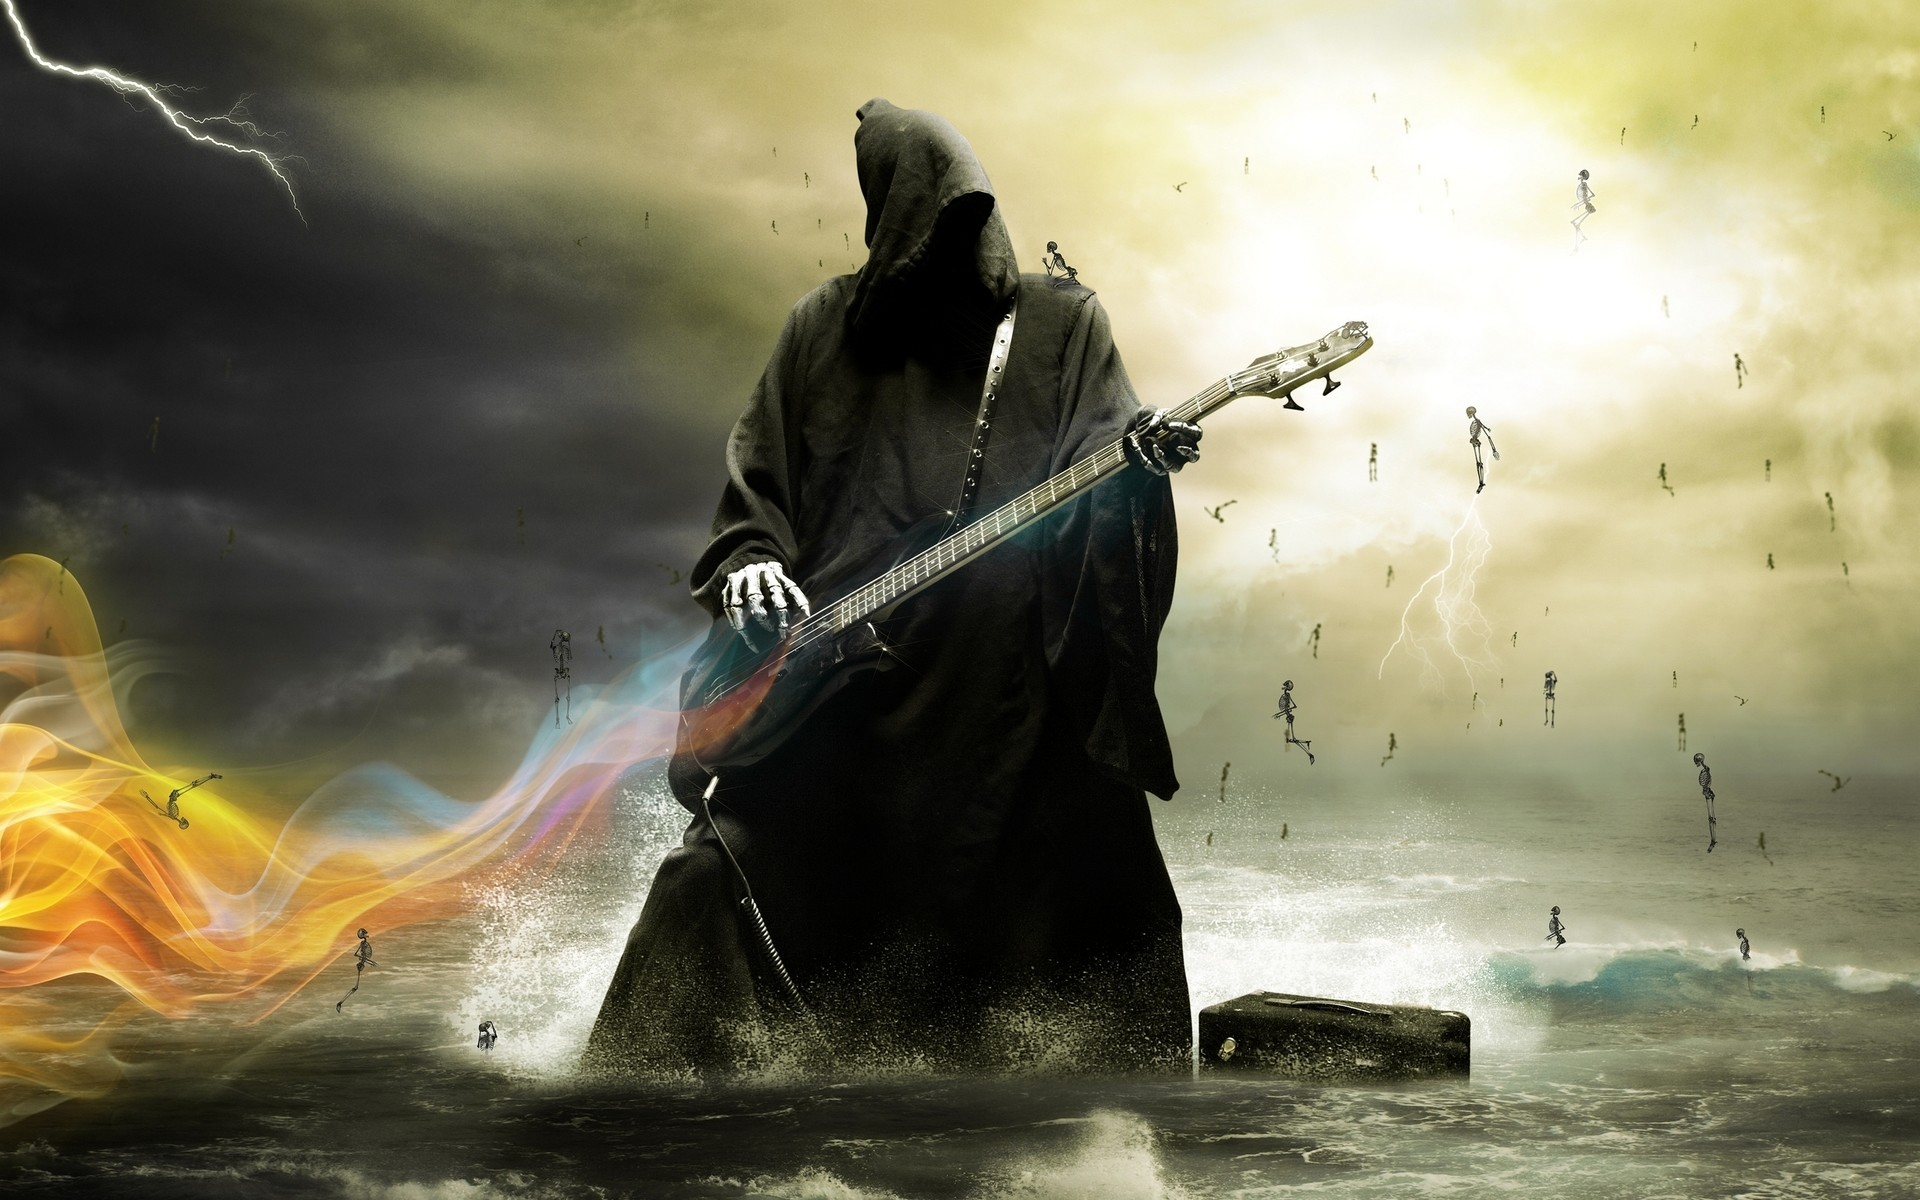 1920x1200 Grim-reaper-dark-fantasy-music-other-digital-art-